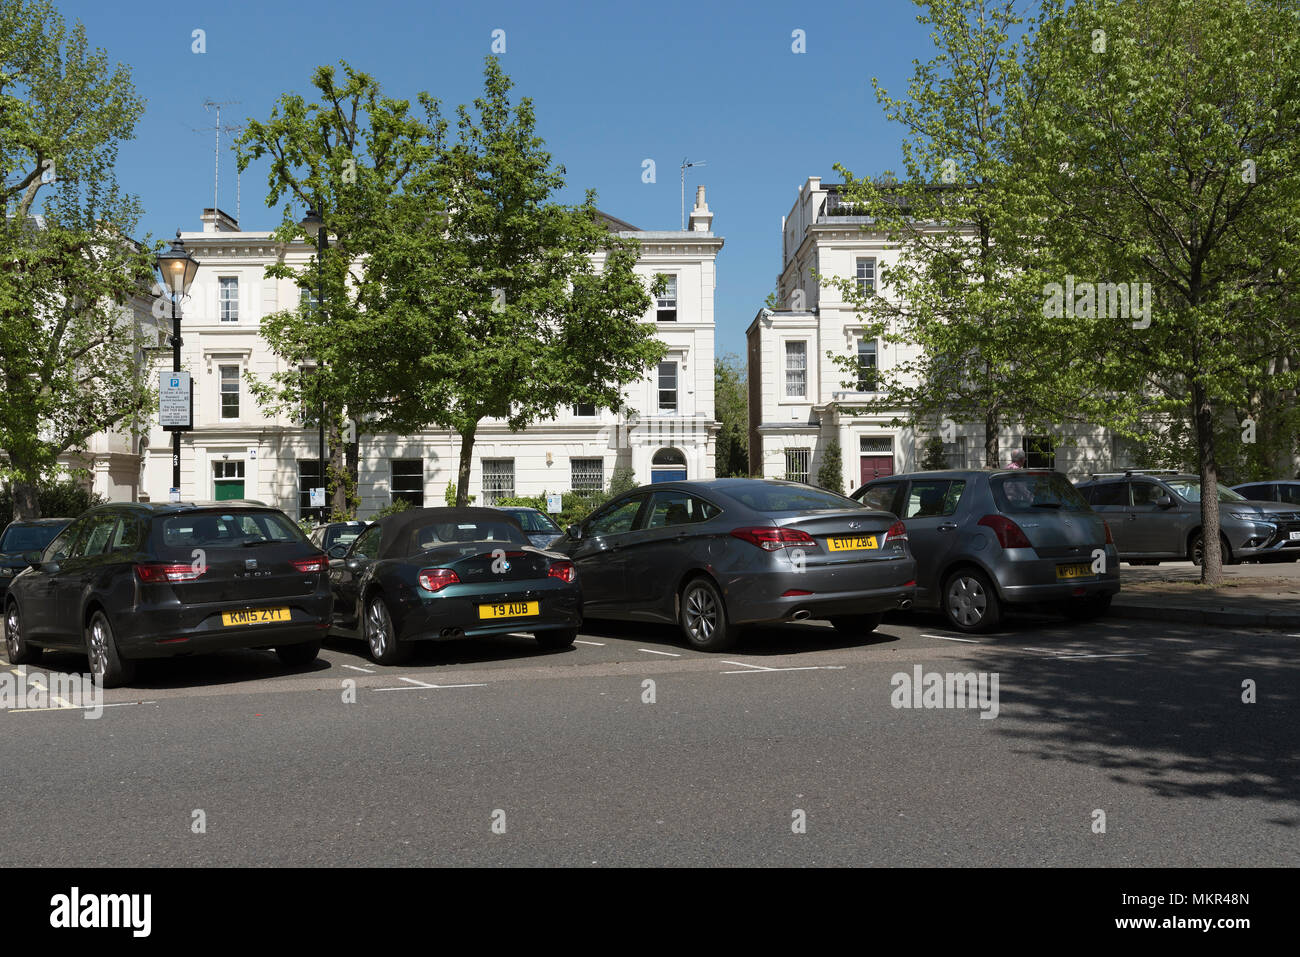 West London UK. 2018. A row of exclusive houses on Warwick Avenue with resident only parking bays, - Stock Image